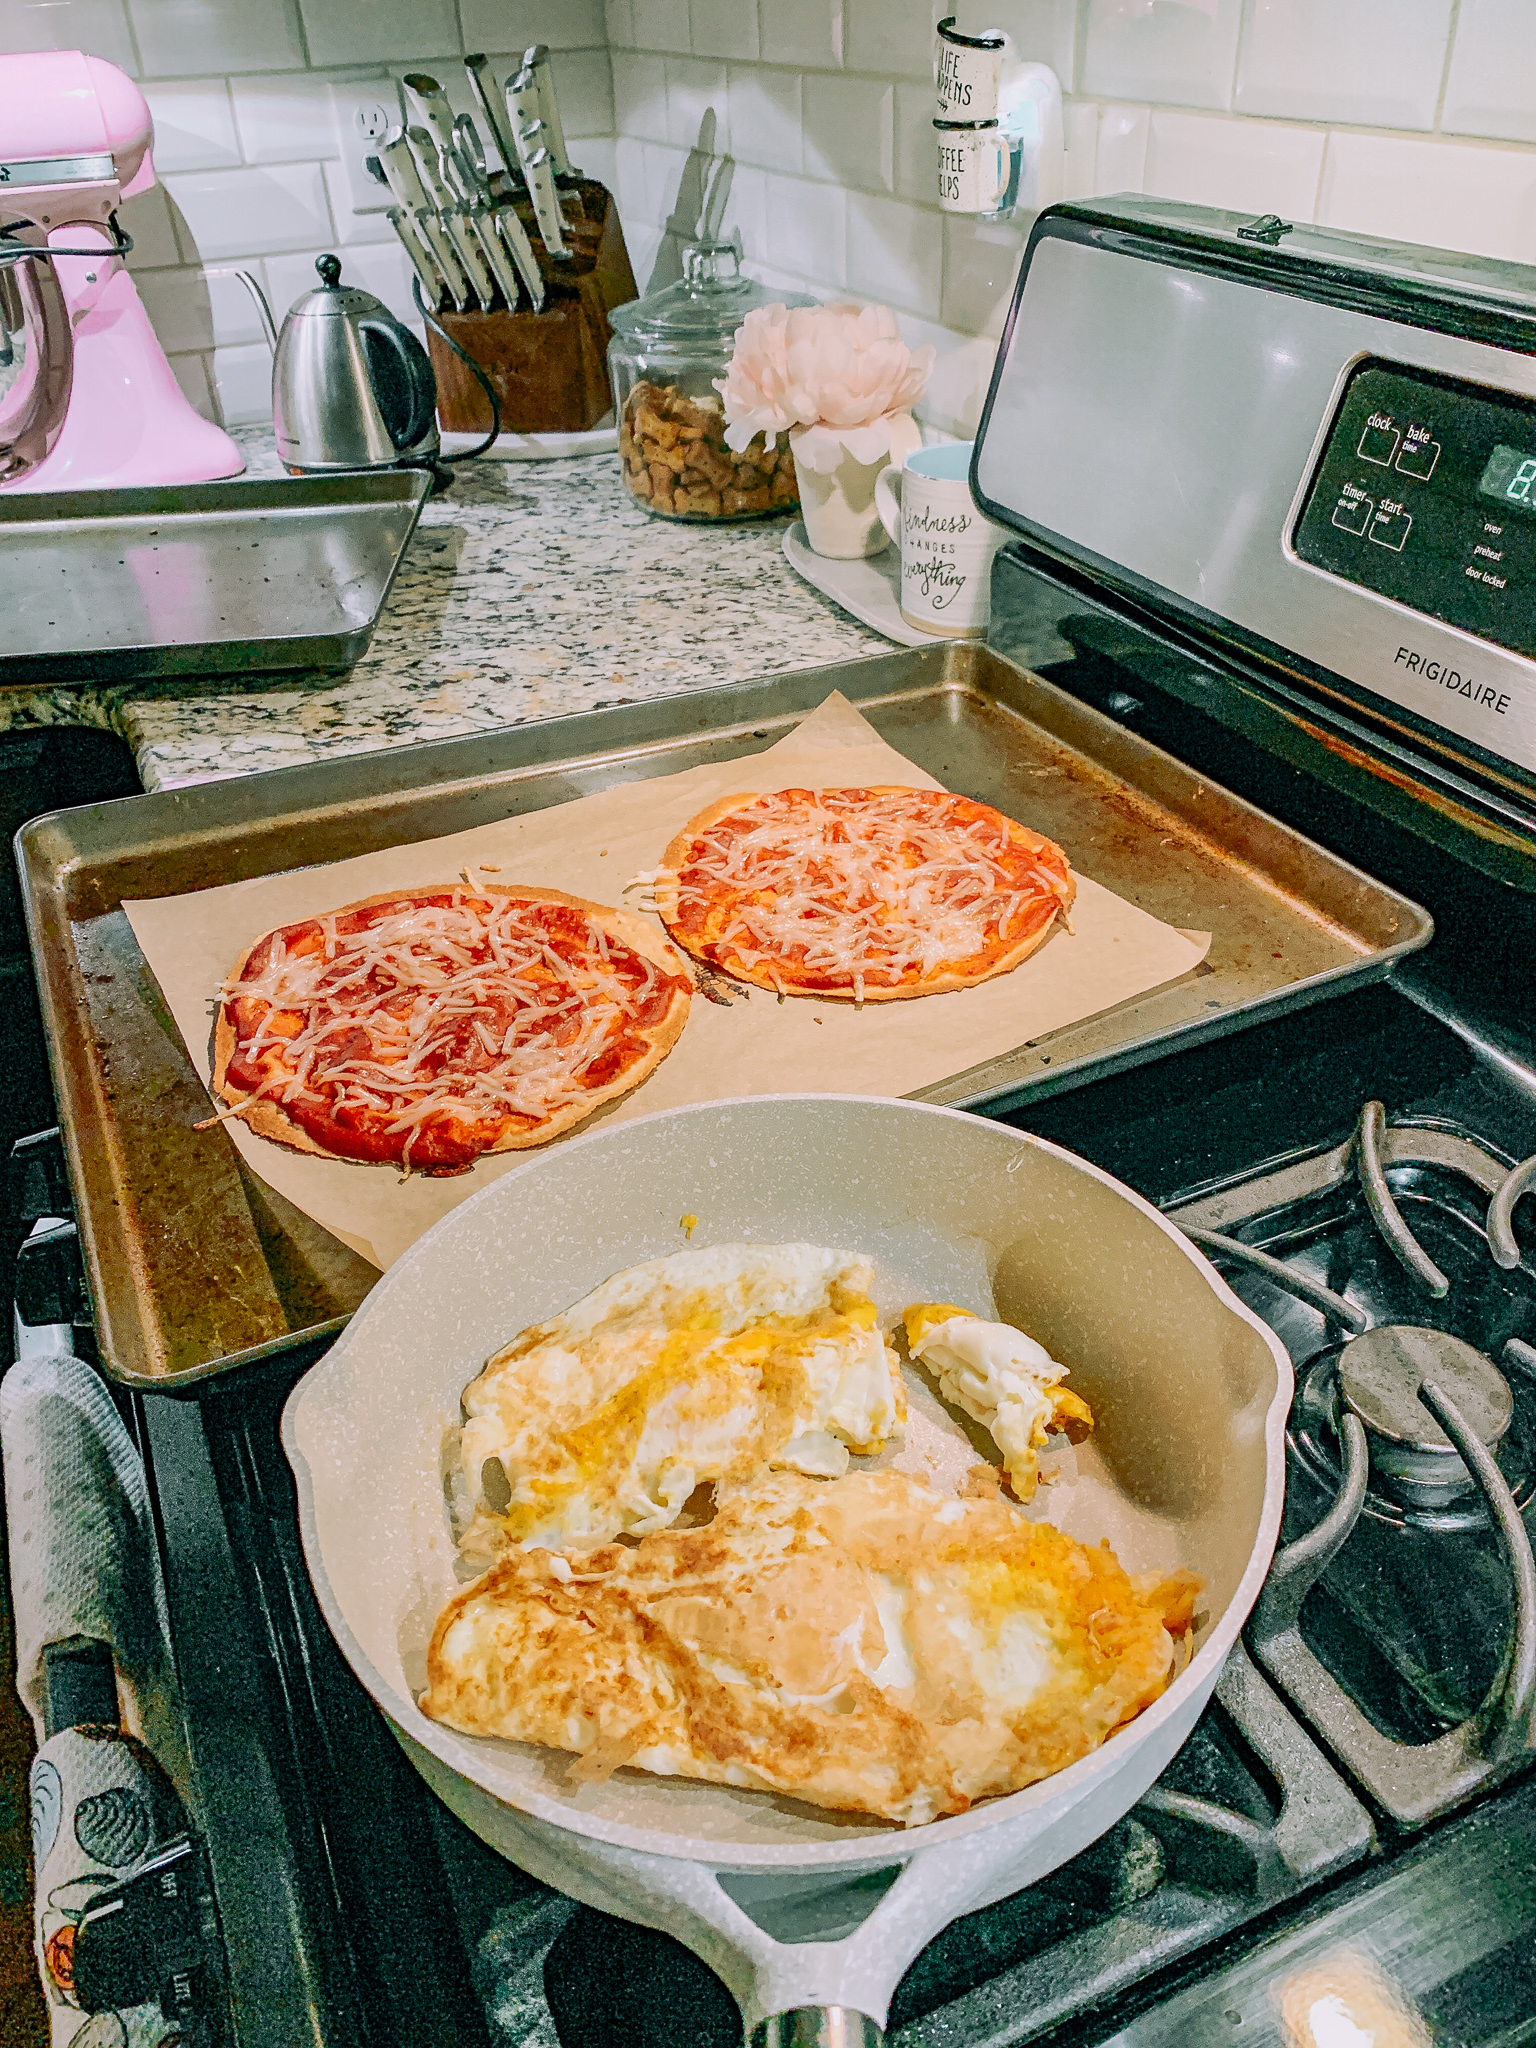 pizza tortillas low carb gluten free eggs healthy foodie quick dinner low carb gluten free dairy free day vegan cheese